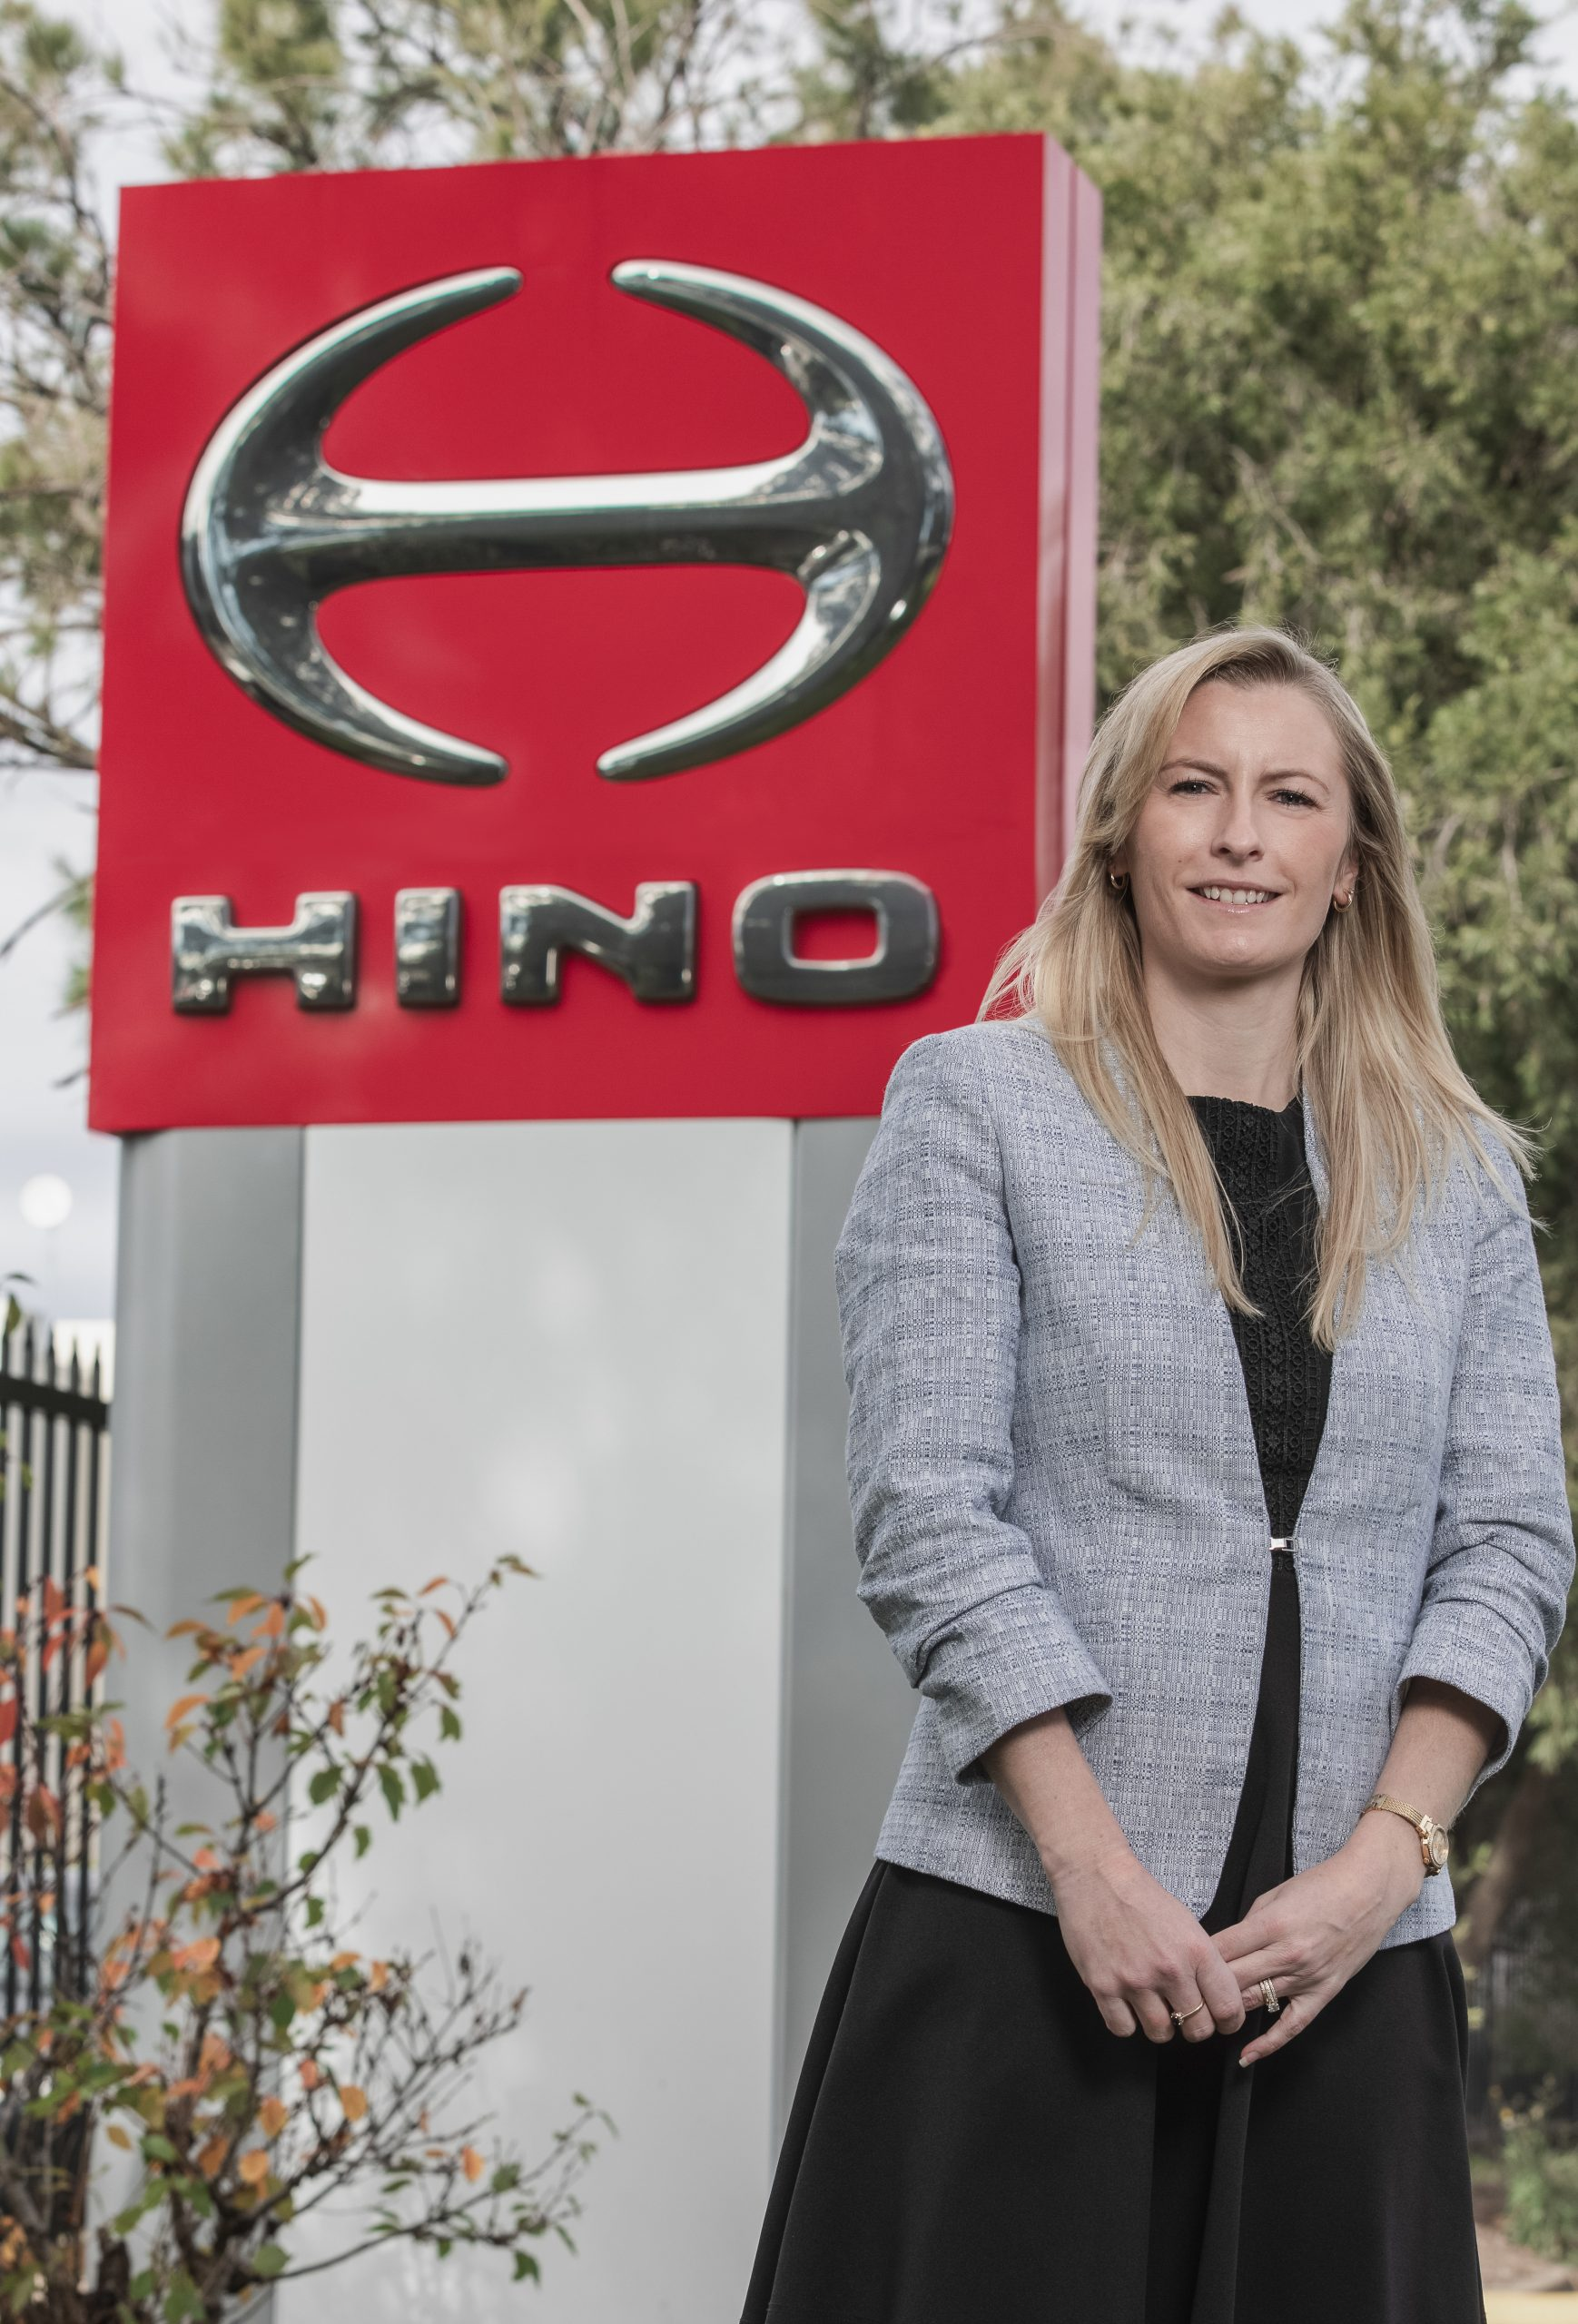 Hino Corporate Portraits. Photo by Chris Pavlich/The Photo Pitch